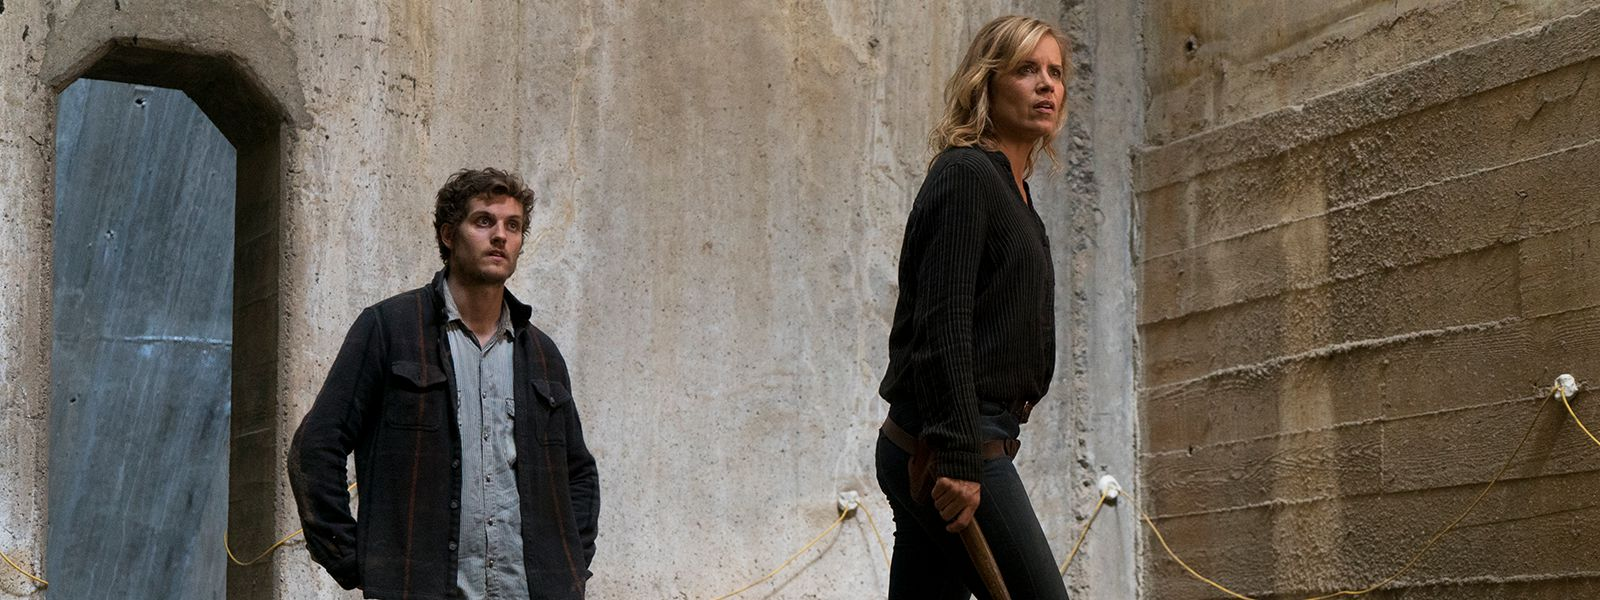 fear-the-walking-dead-episode-315-troy-sharman-madison-dickens-post-800×600